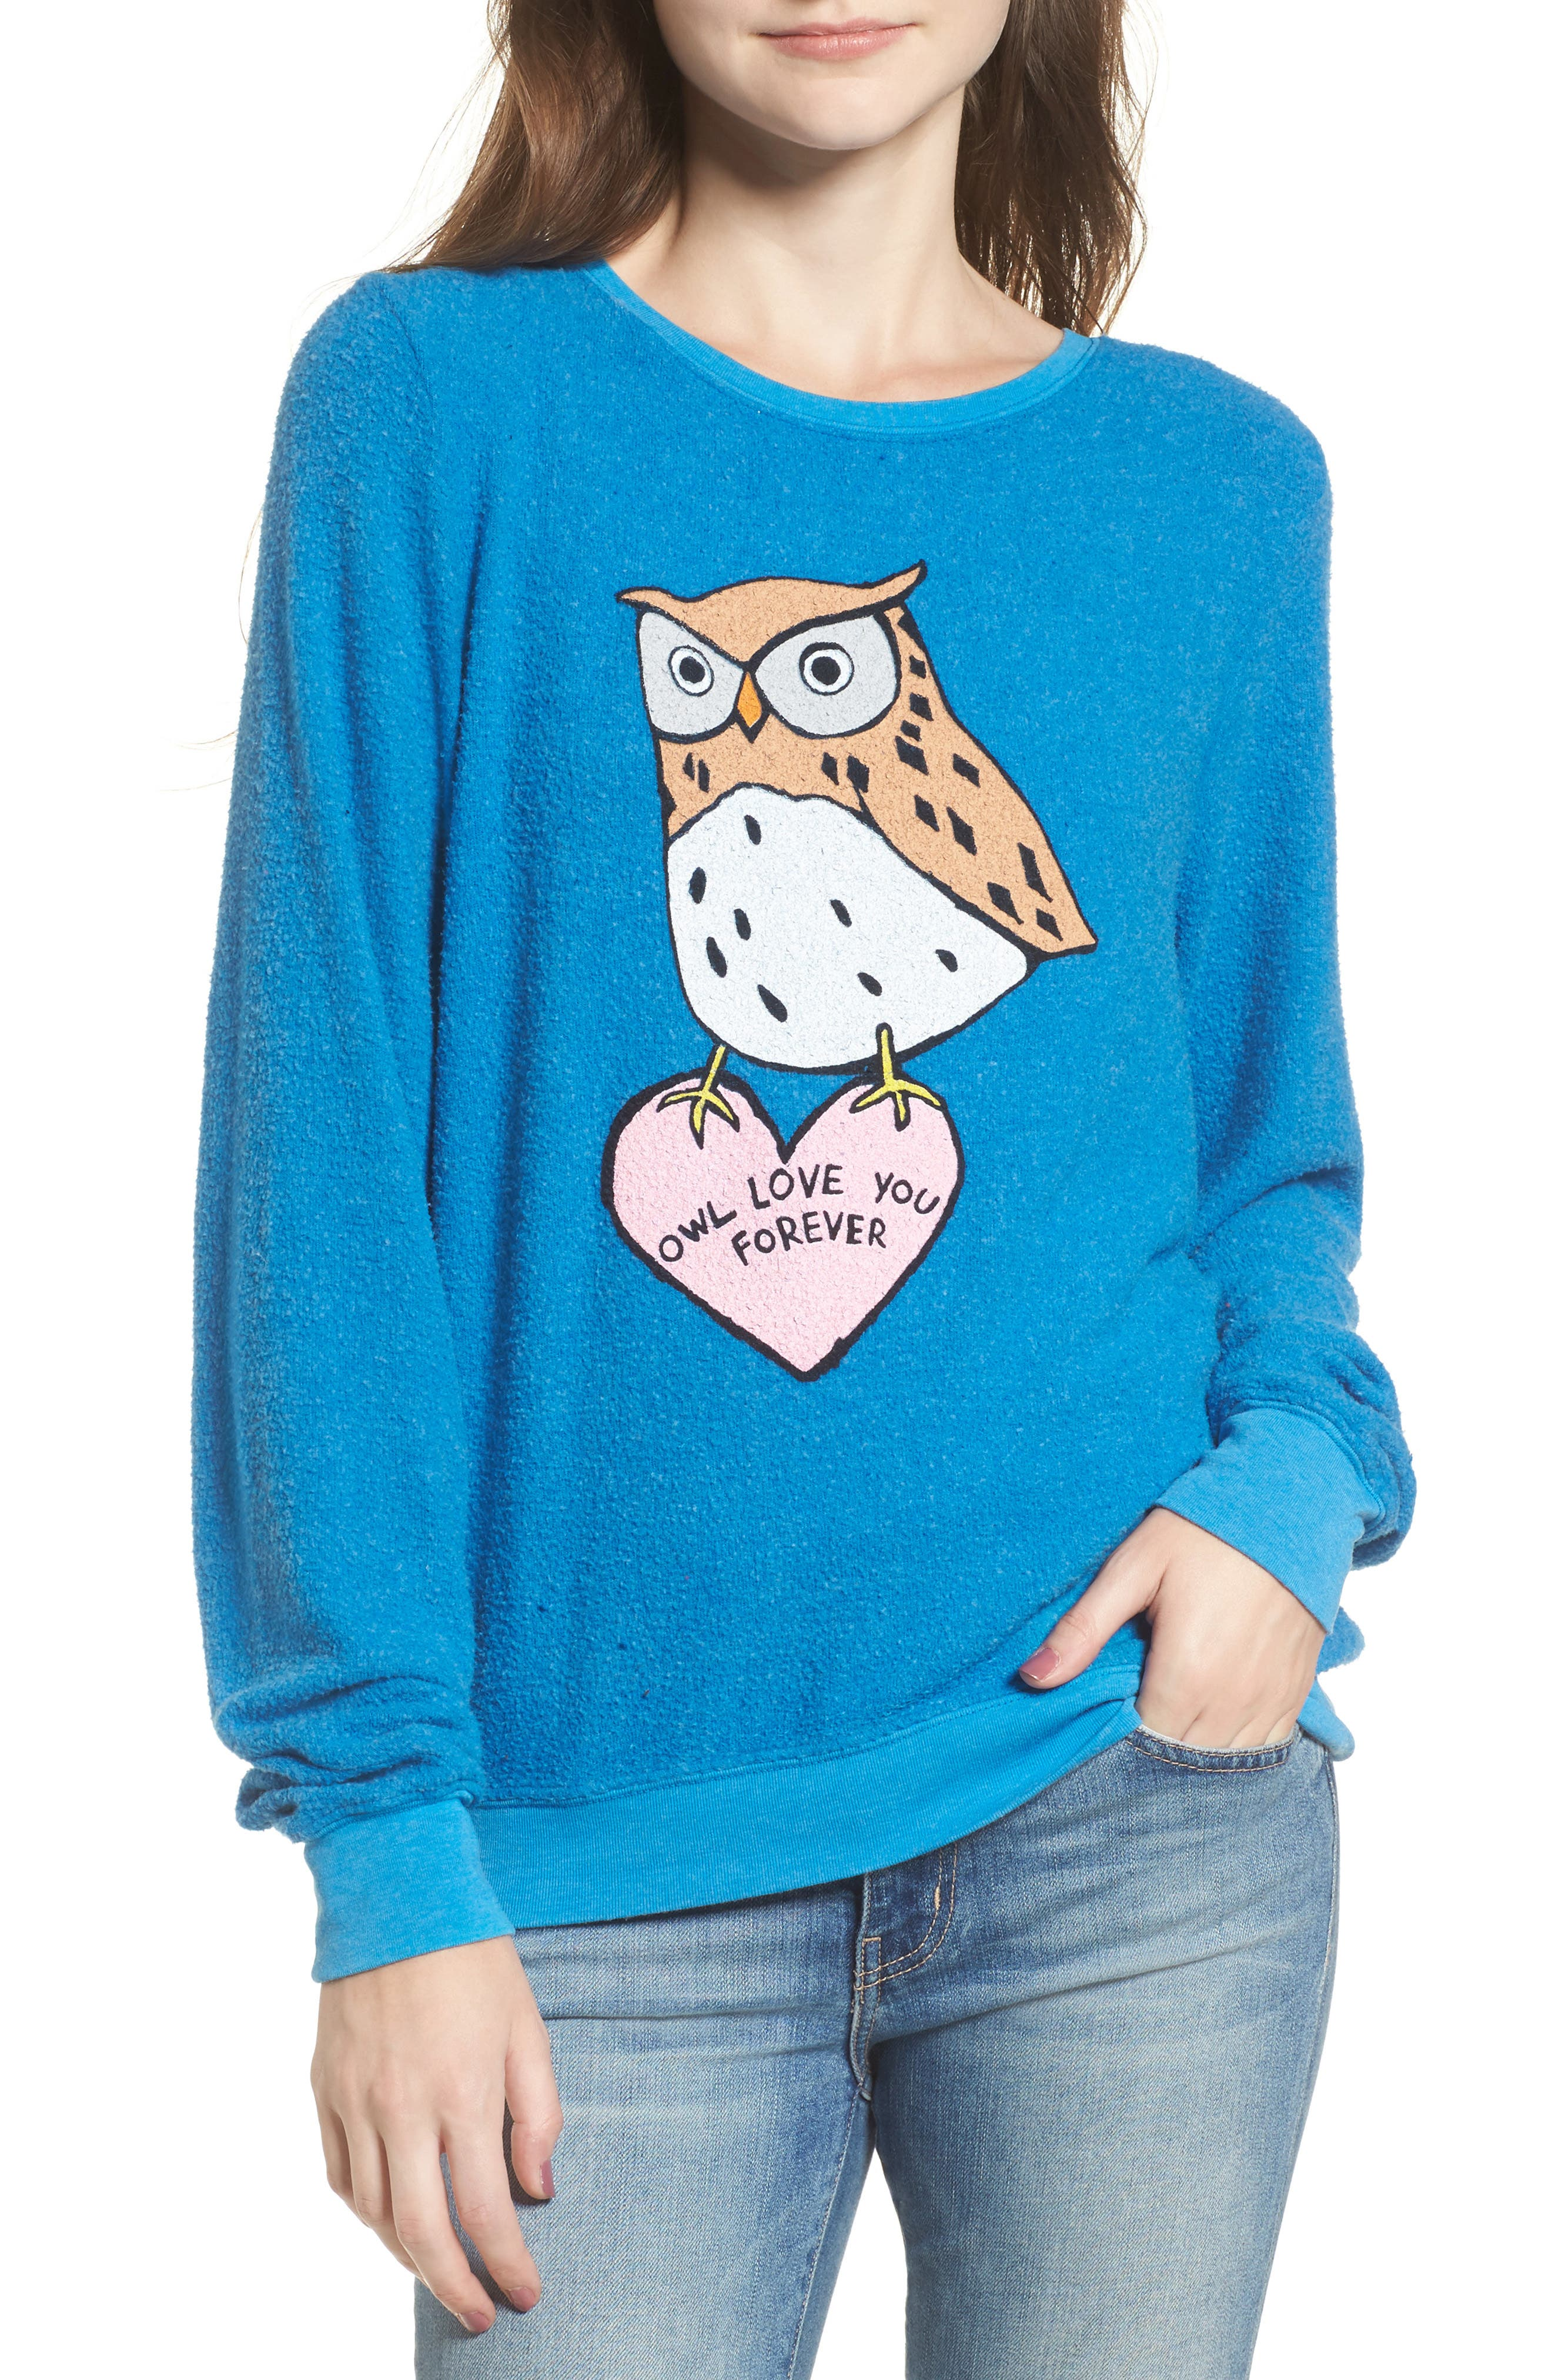 Owl Love You Forever Sweatshirt,                         Main,                         color, 401